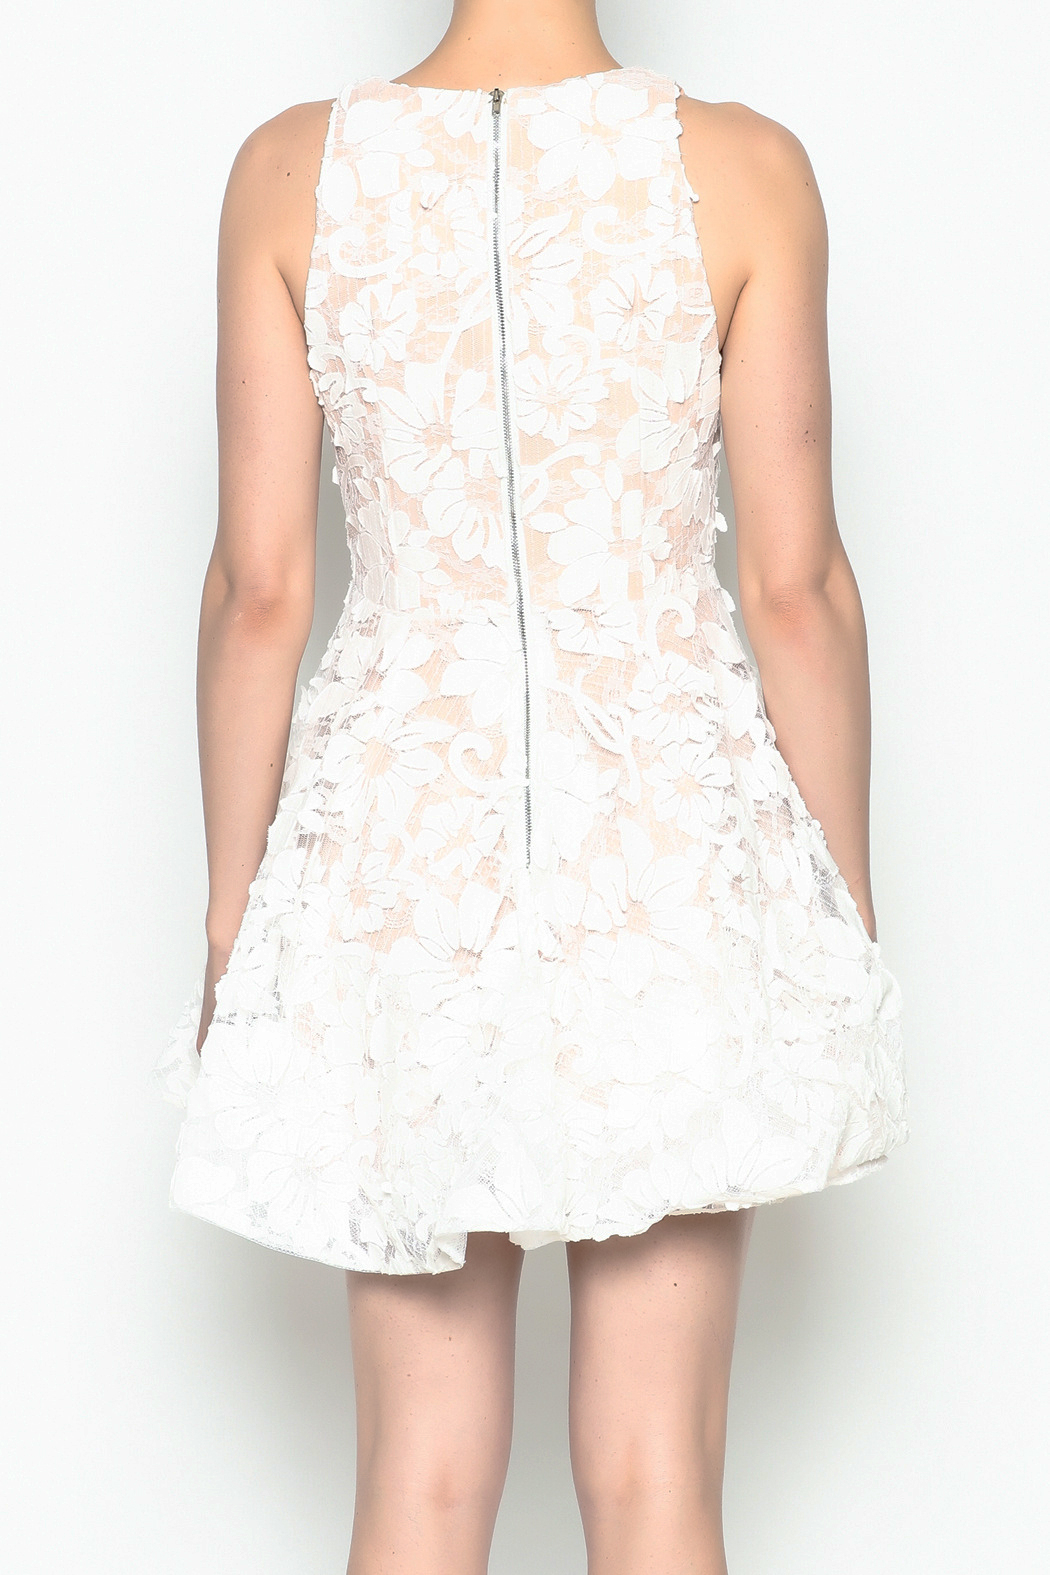 luxxel White Layered Dress - Back Cropped Image